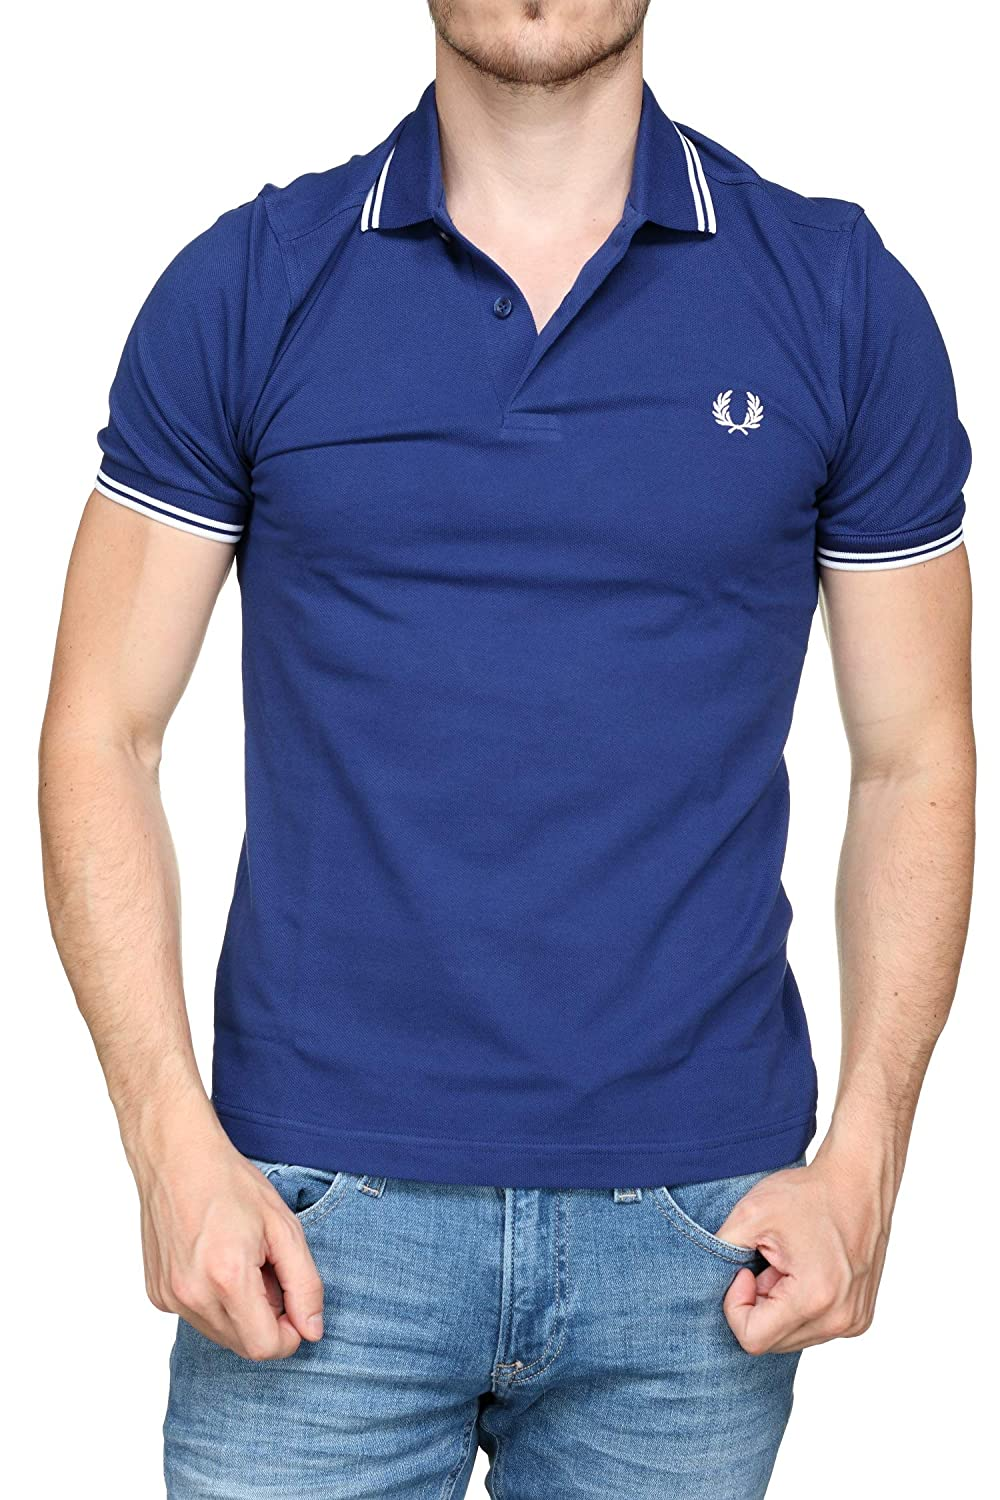 Fred Perry Hombres Polo con Punta Doble m3600 i71 Azul: Amazon.es ...